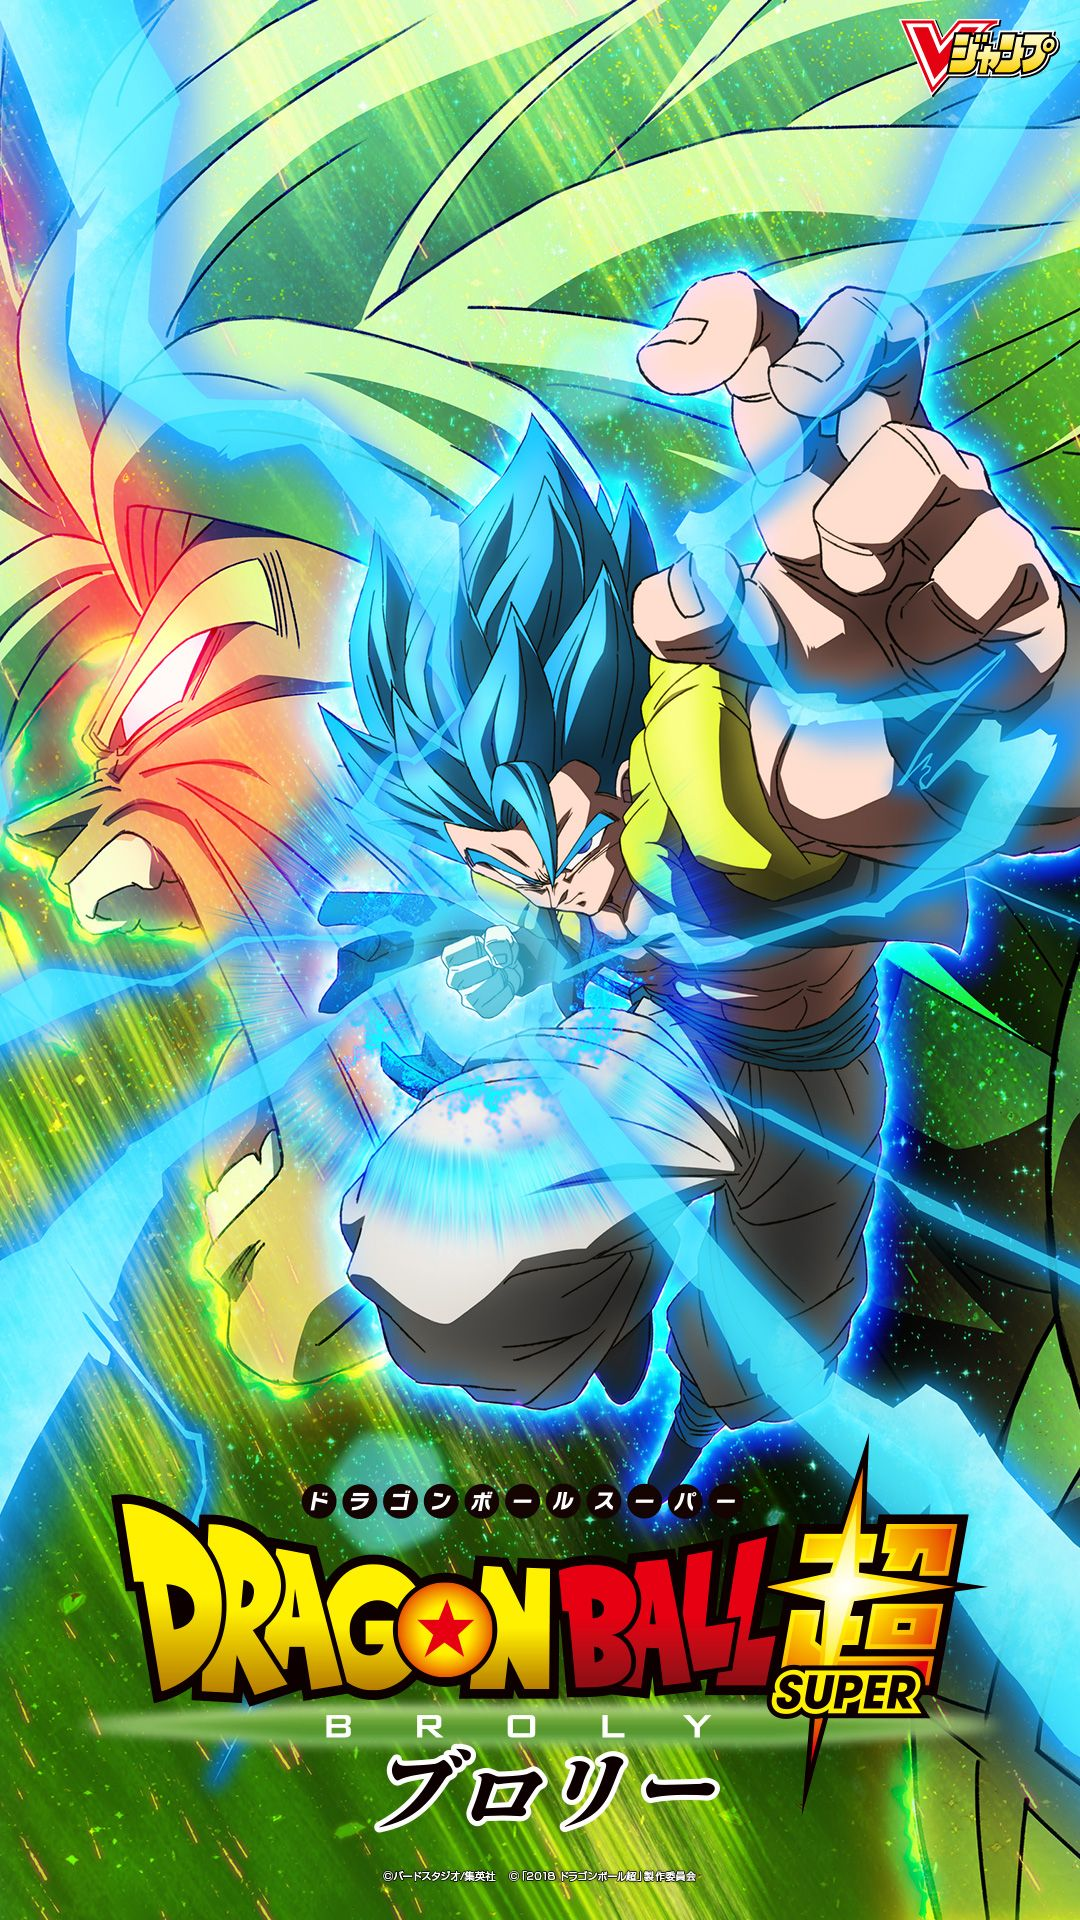 Dbz Wallpaper Android Download in 2020 Dragon ball super